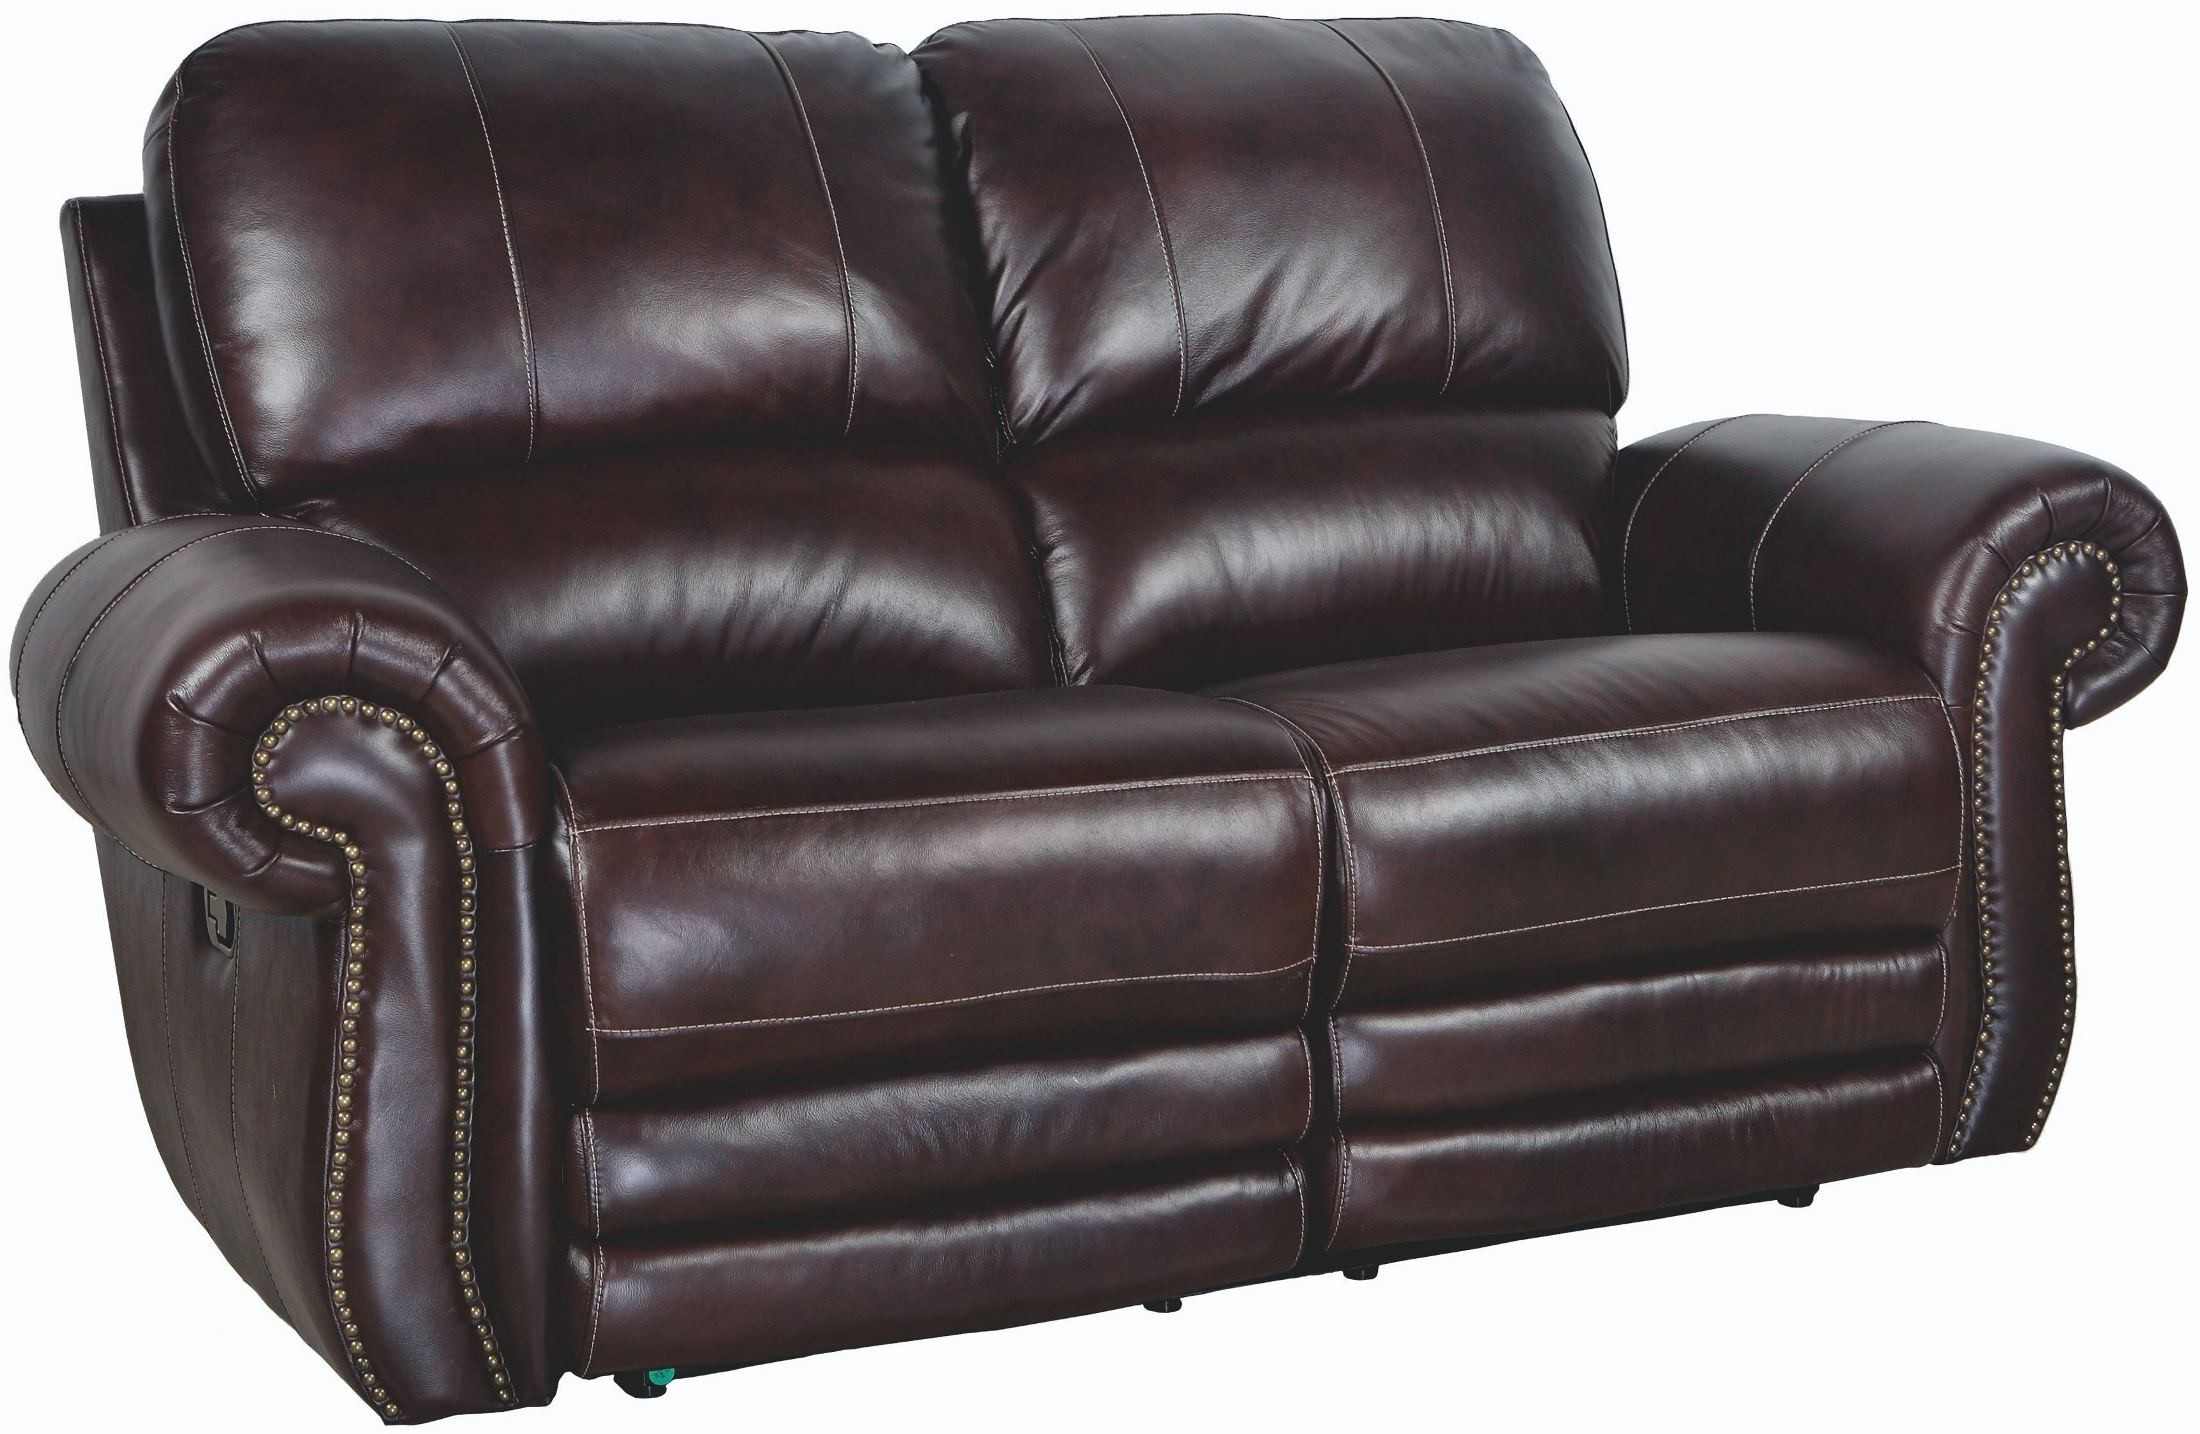 Rossi Dark Brown Power Reclining Loveseat From New Classic Pertaining To Expedition Brown Power Reclining Sofas (View 1 of 15)